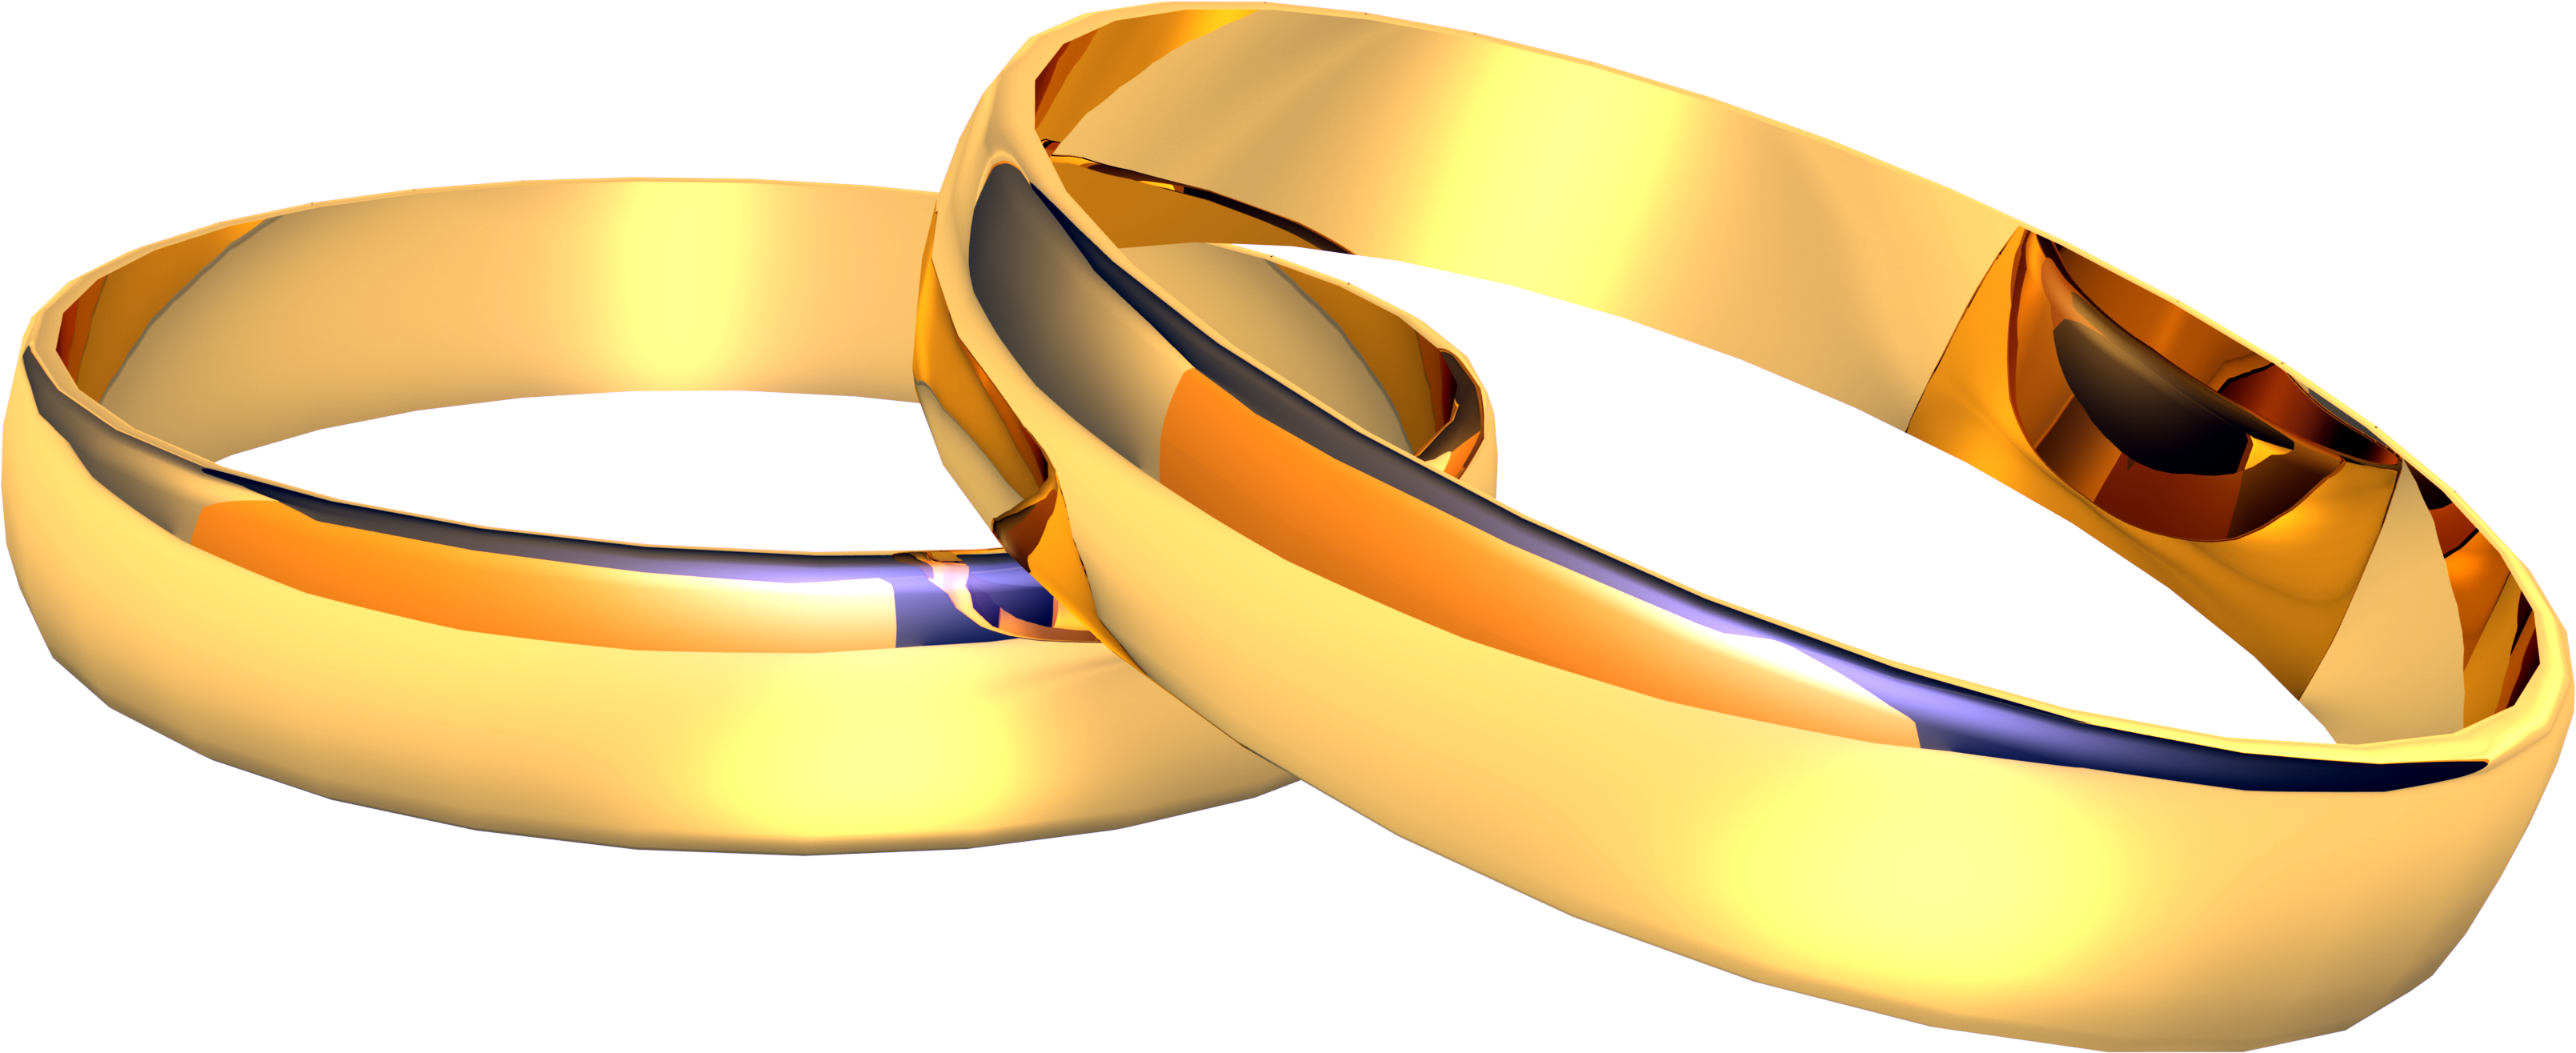 Wedding Png Image PNG Image - Wedding HD PNG - Engagement Ring PNG HD Free